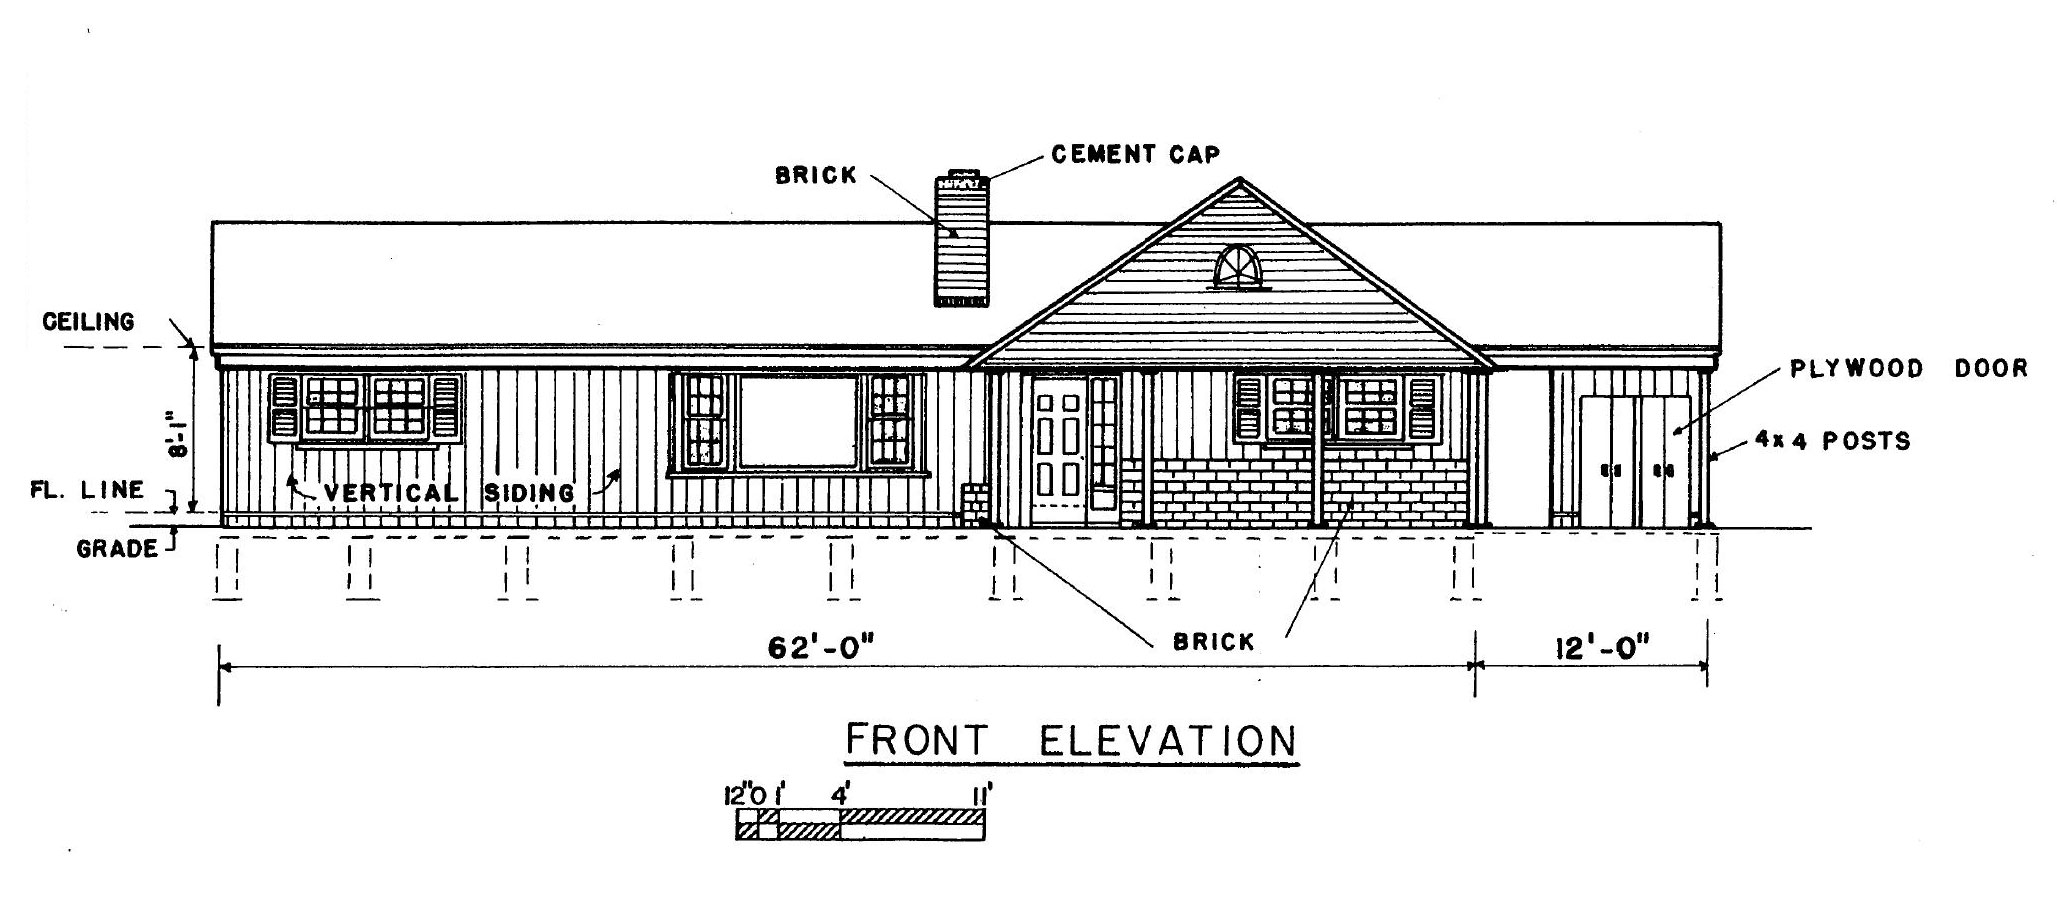 Simple 3 bedroom house floor plans 4 bedroom house simple for Simple 3 bedroom house floor plans